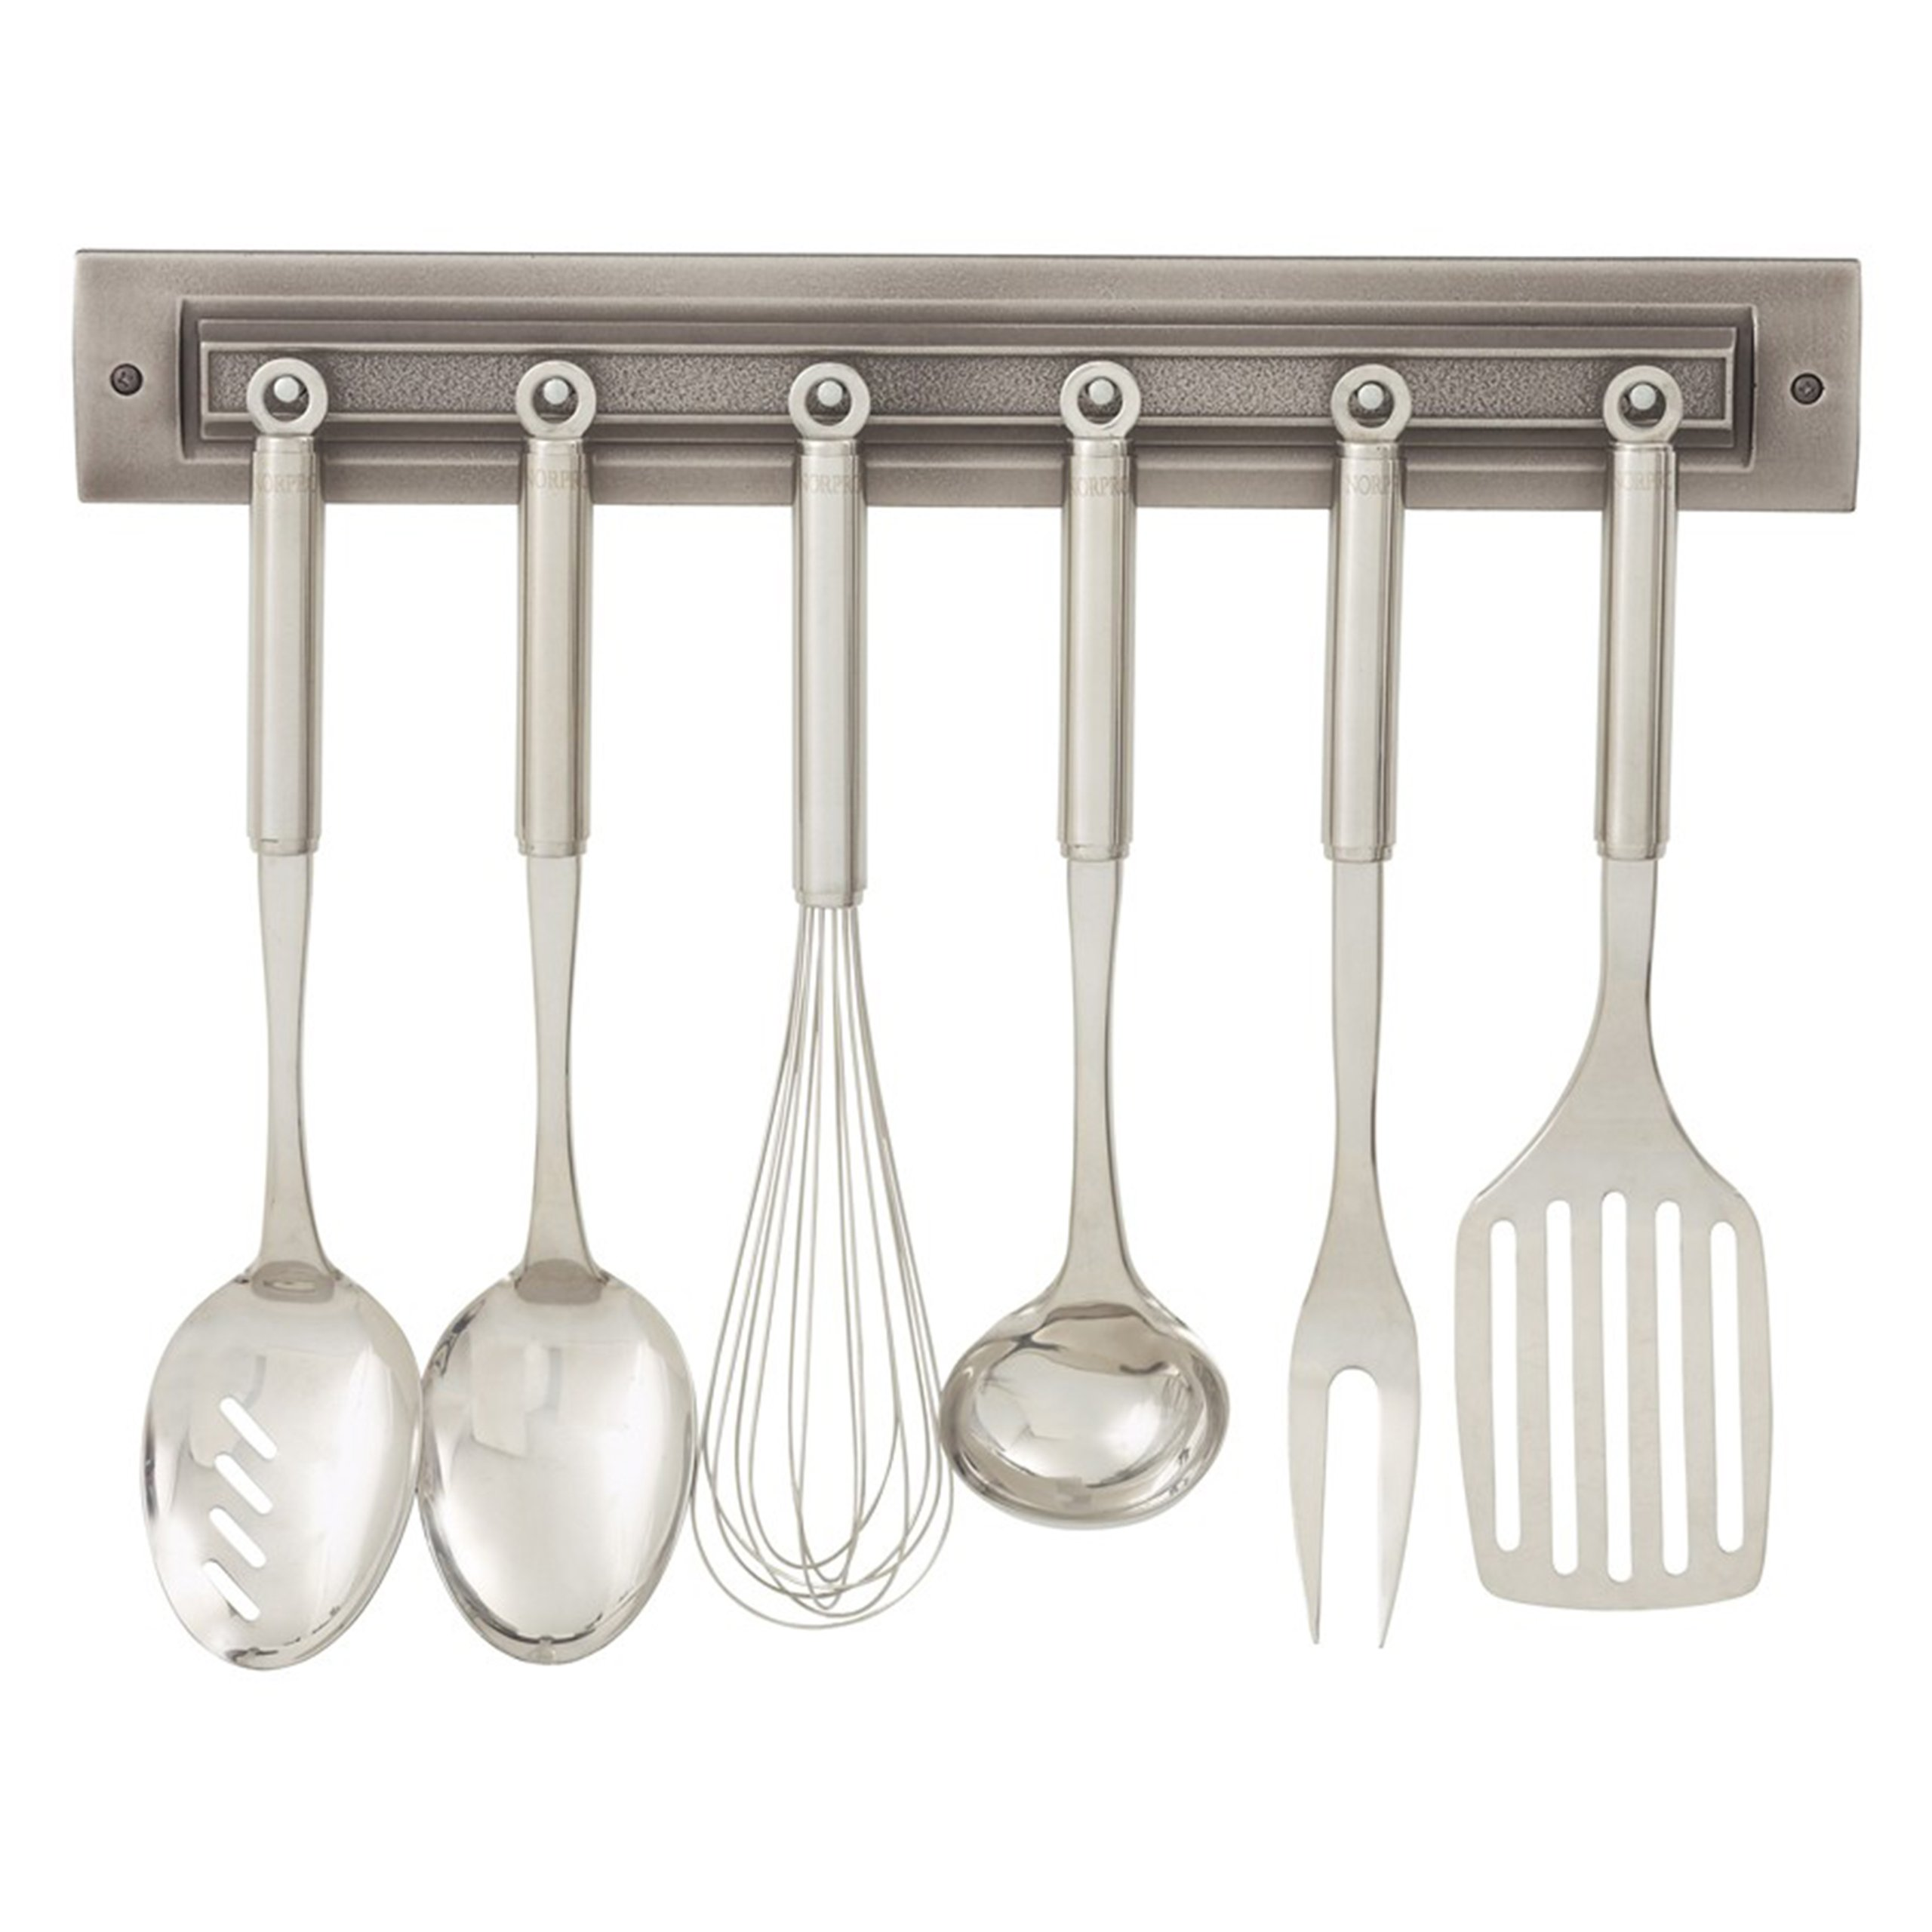 Utensil Rack Finish: Brushed Nickel by RQ Home